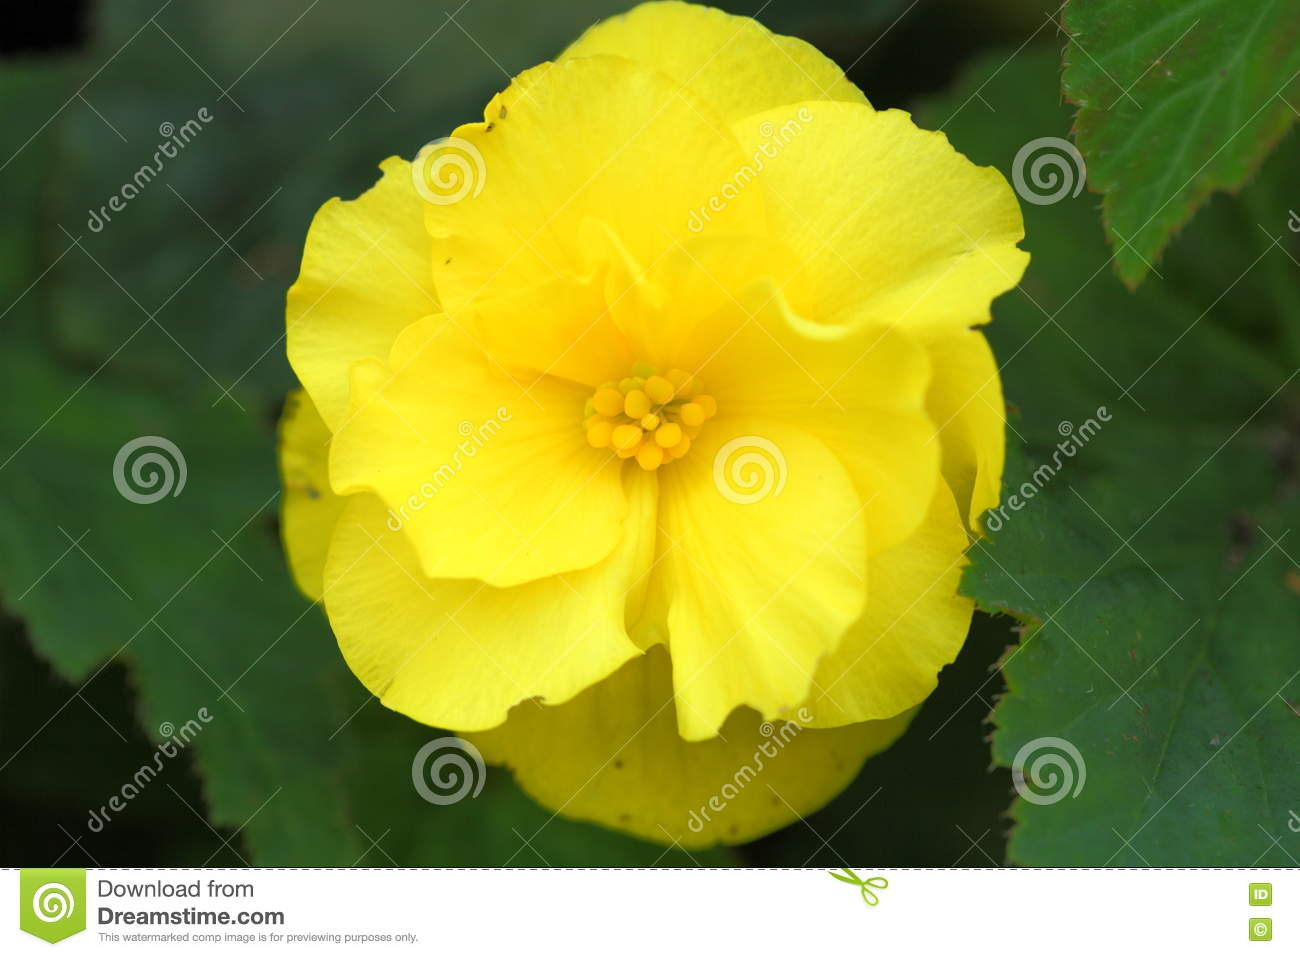 Yellow Flower Middle Stock Image Image Of Others Leaf 76285477